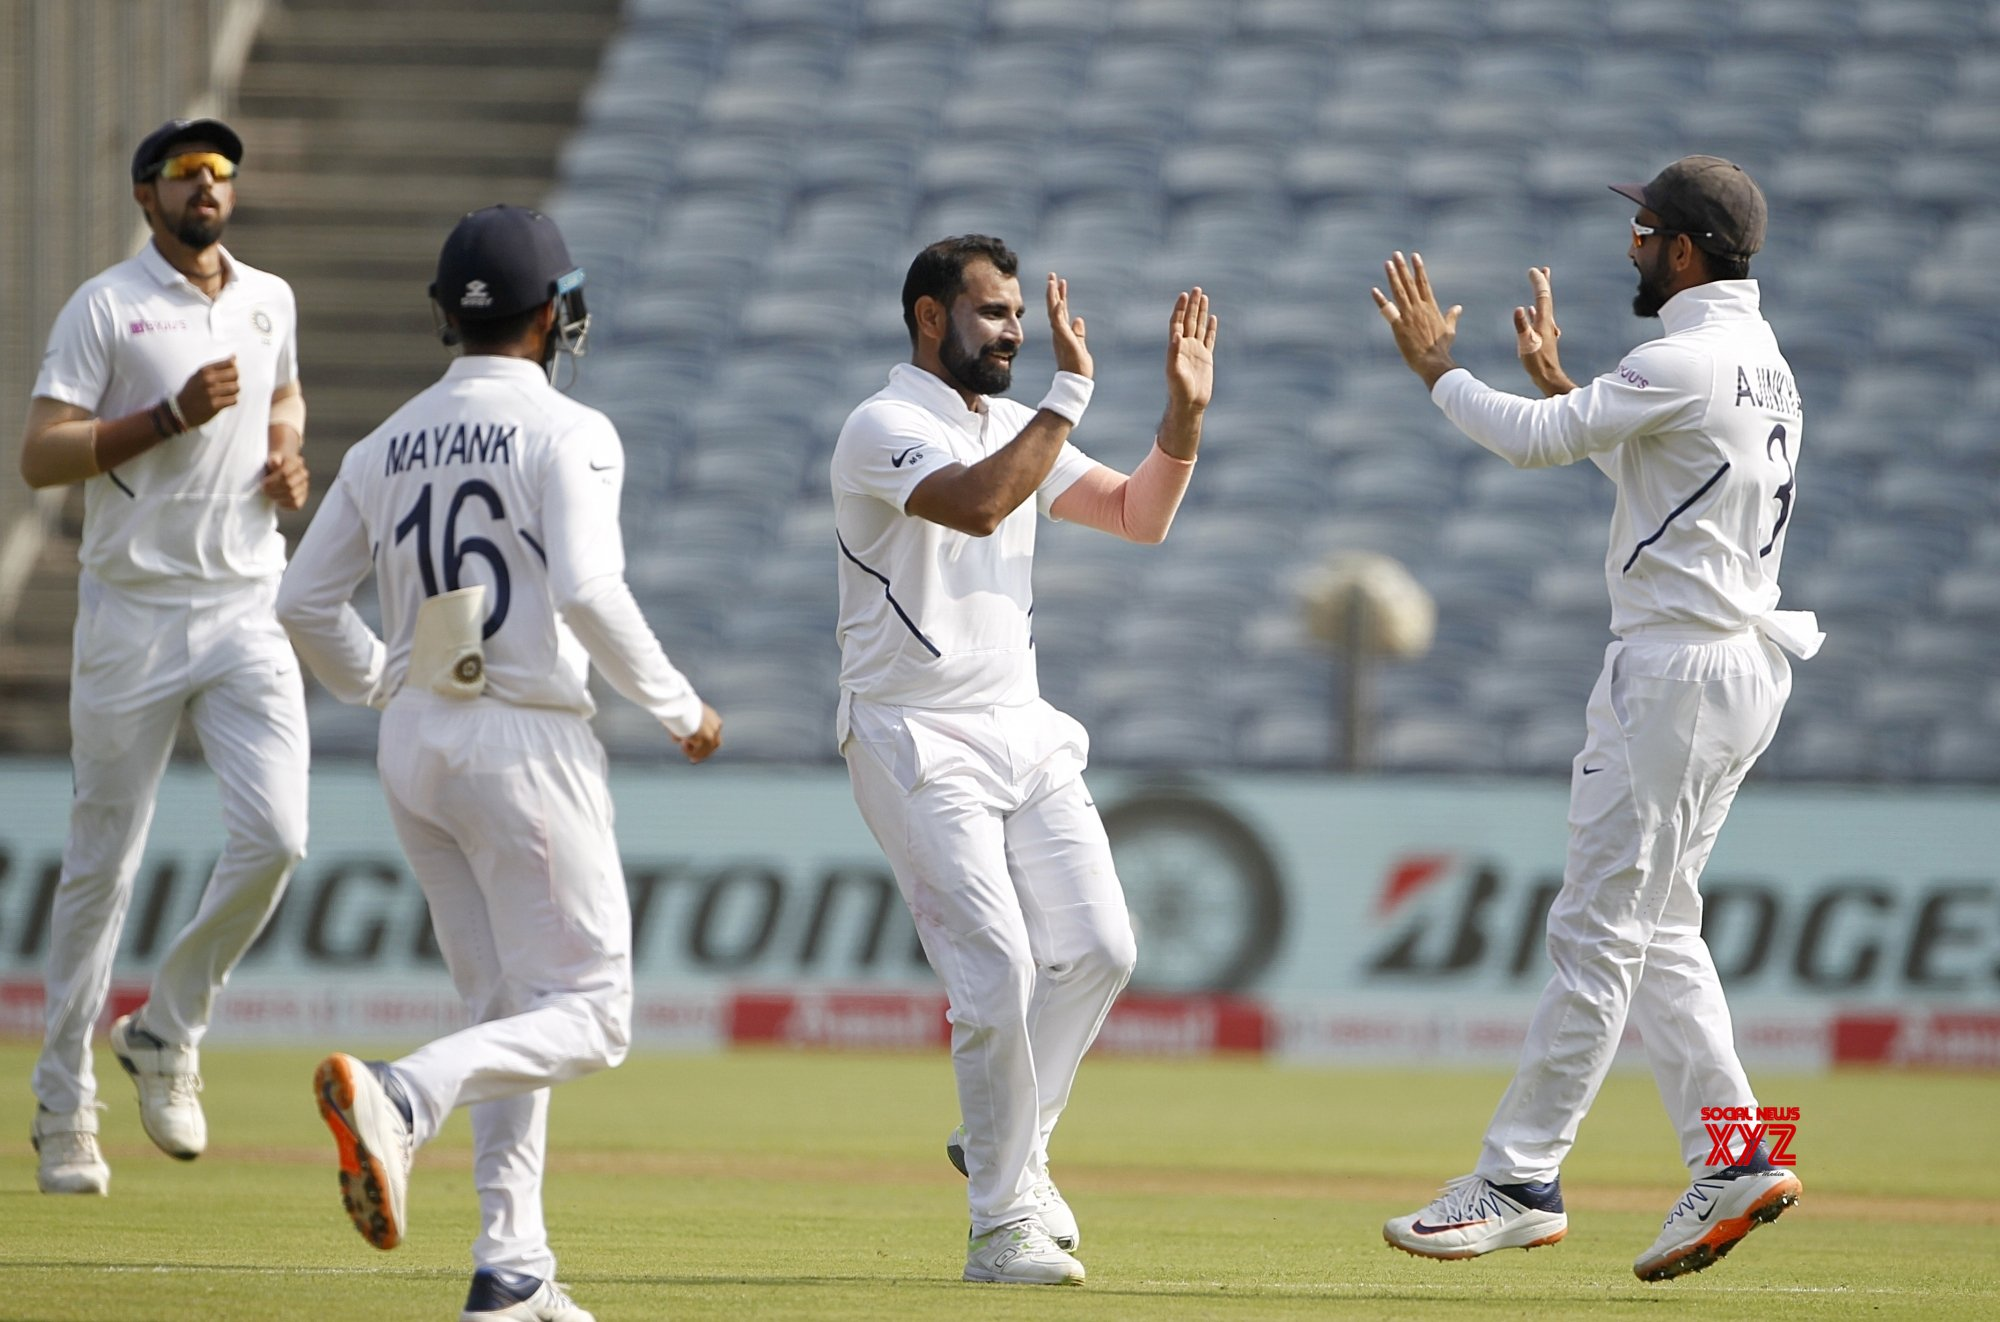 Pune: 2nd Test - India Vs South Africa - Day 3 (Batch - 2) #Gallery